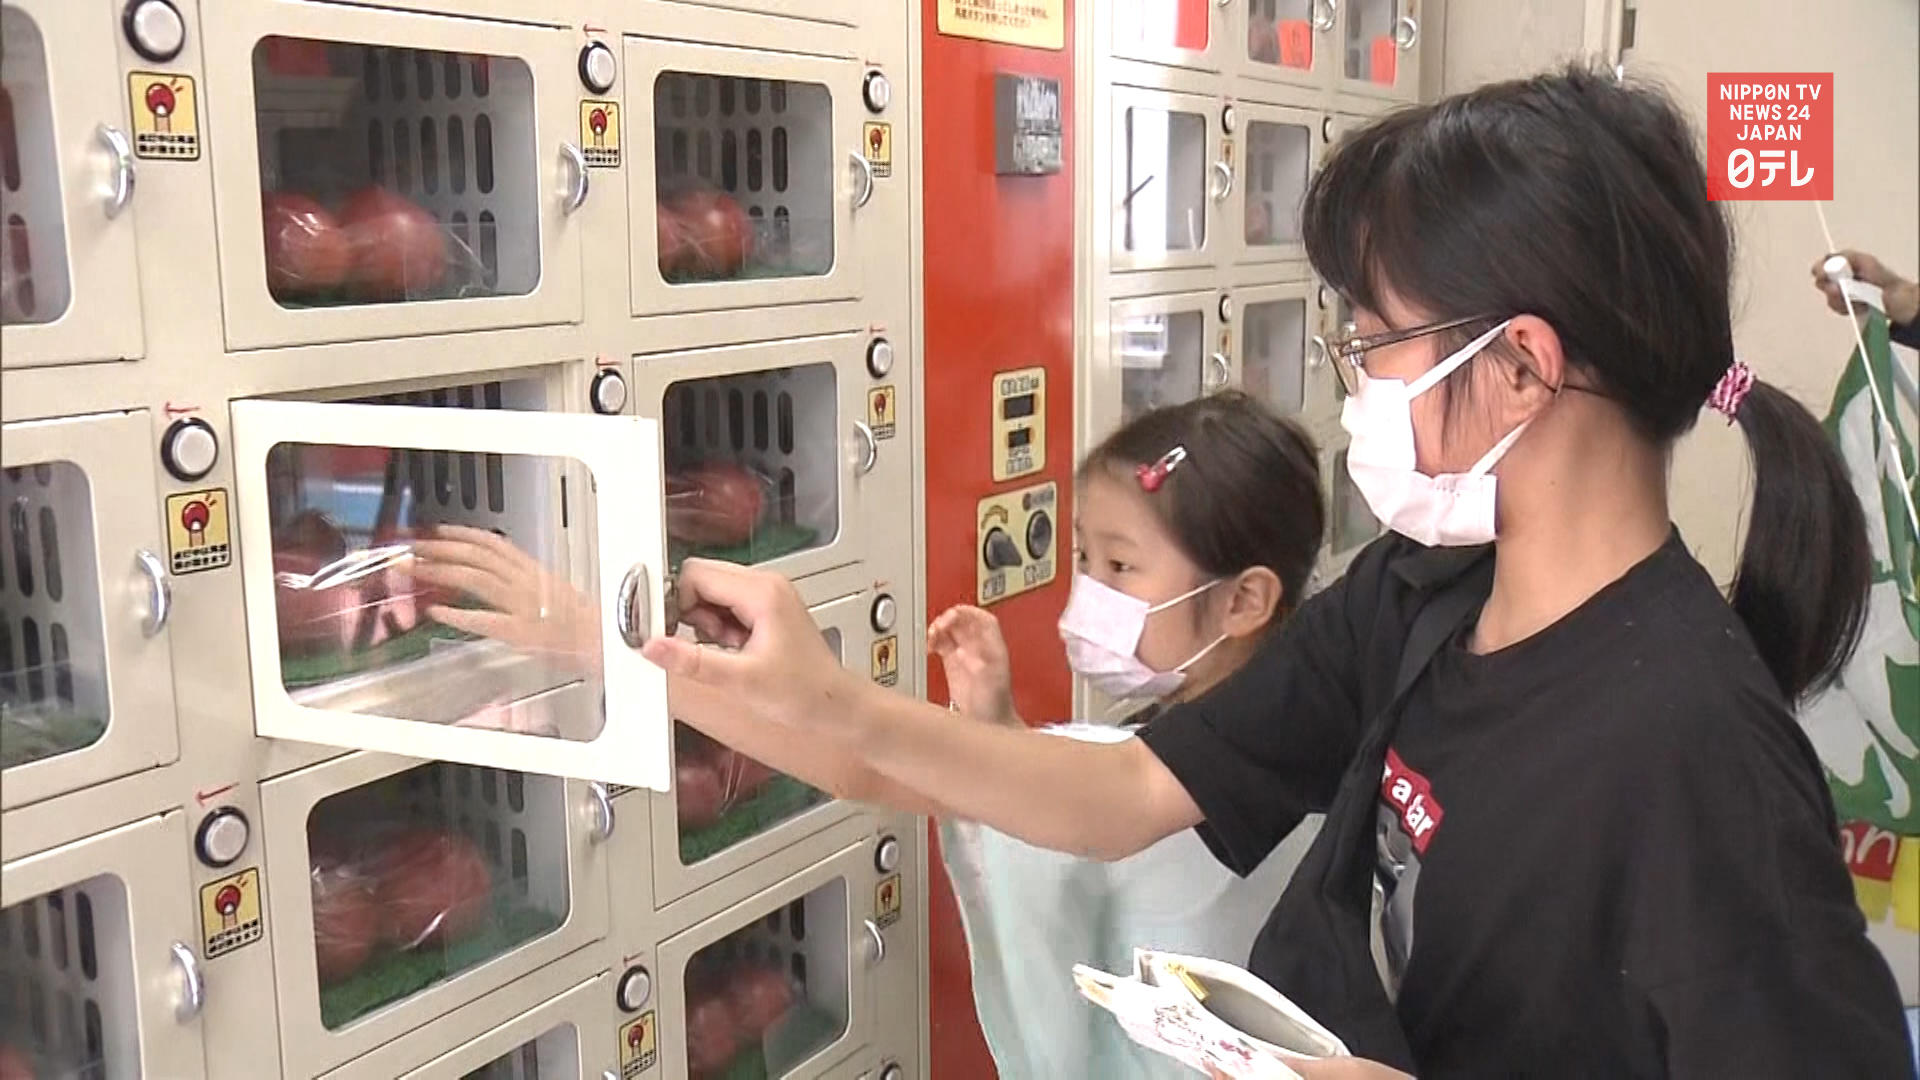 Buying produce directly from farmers gaining popularity in Tokyo amid virus